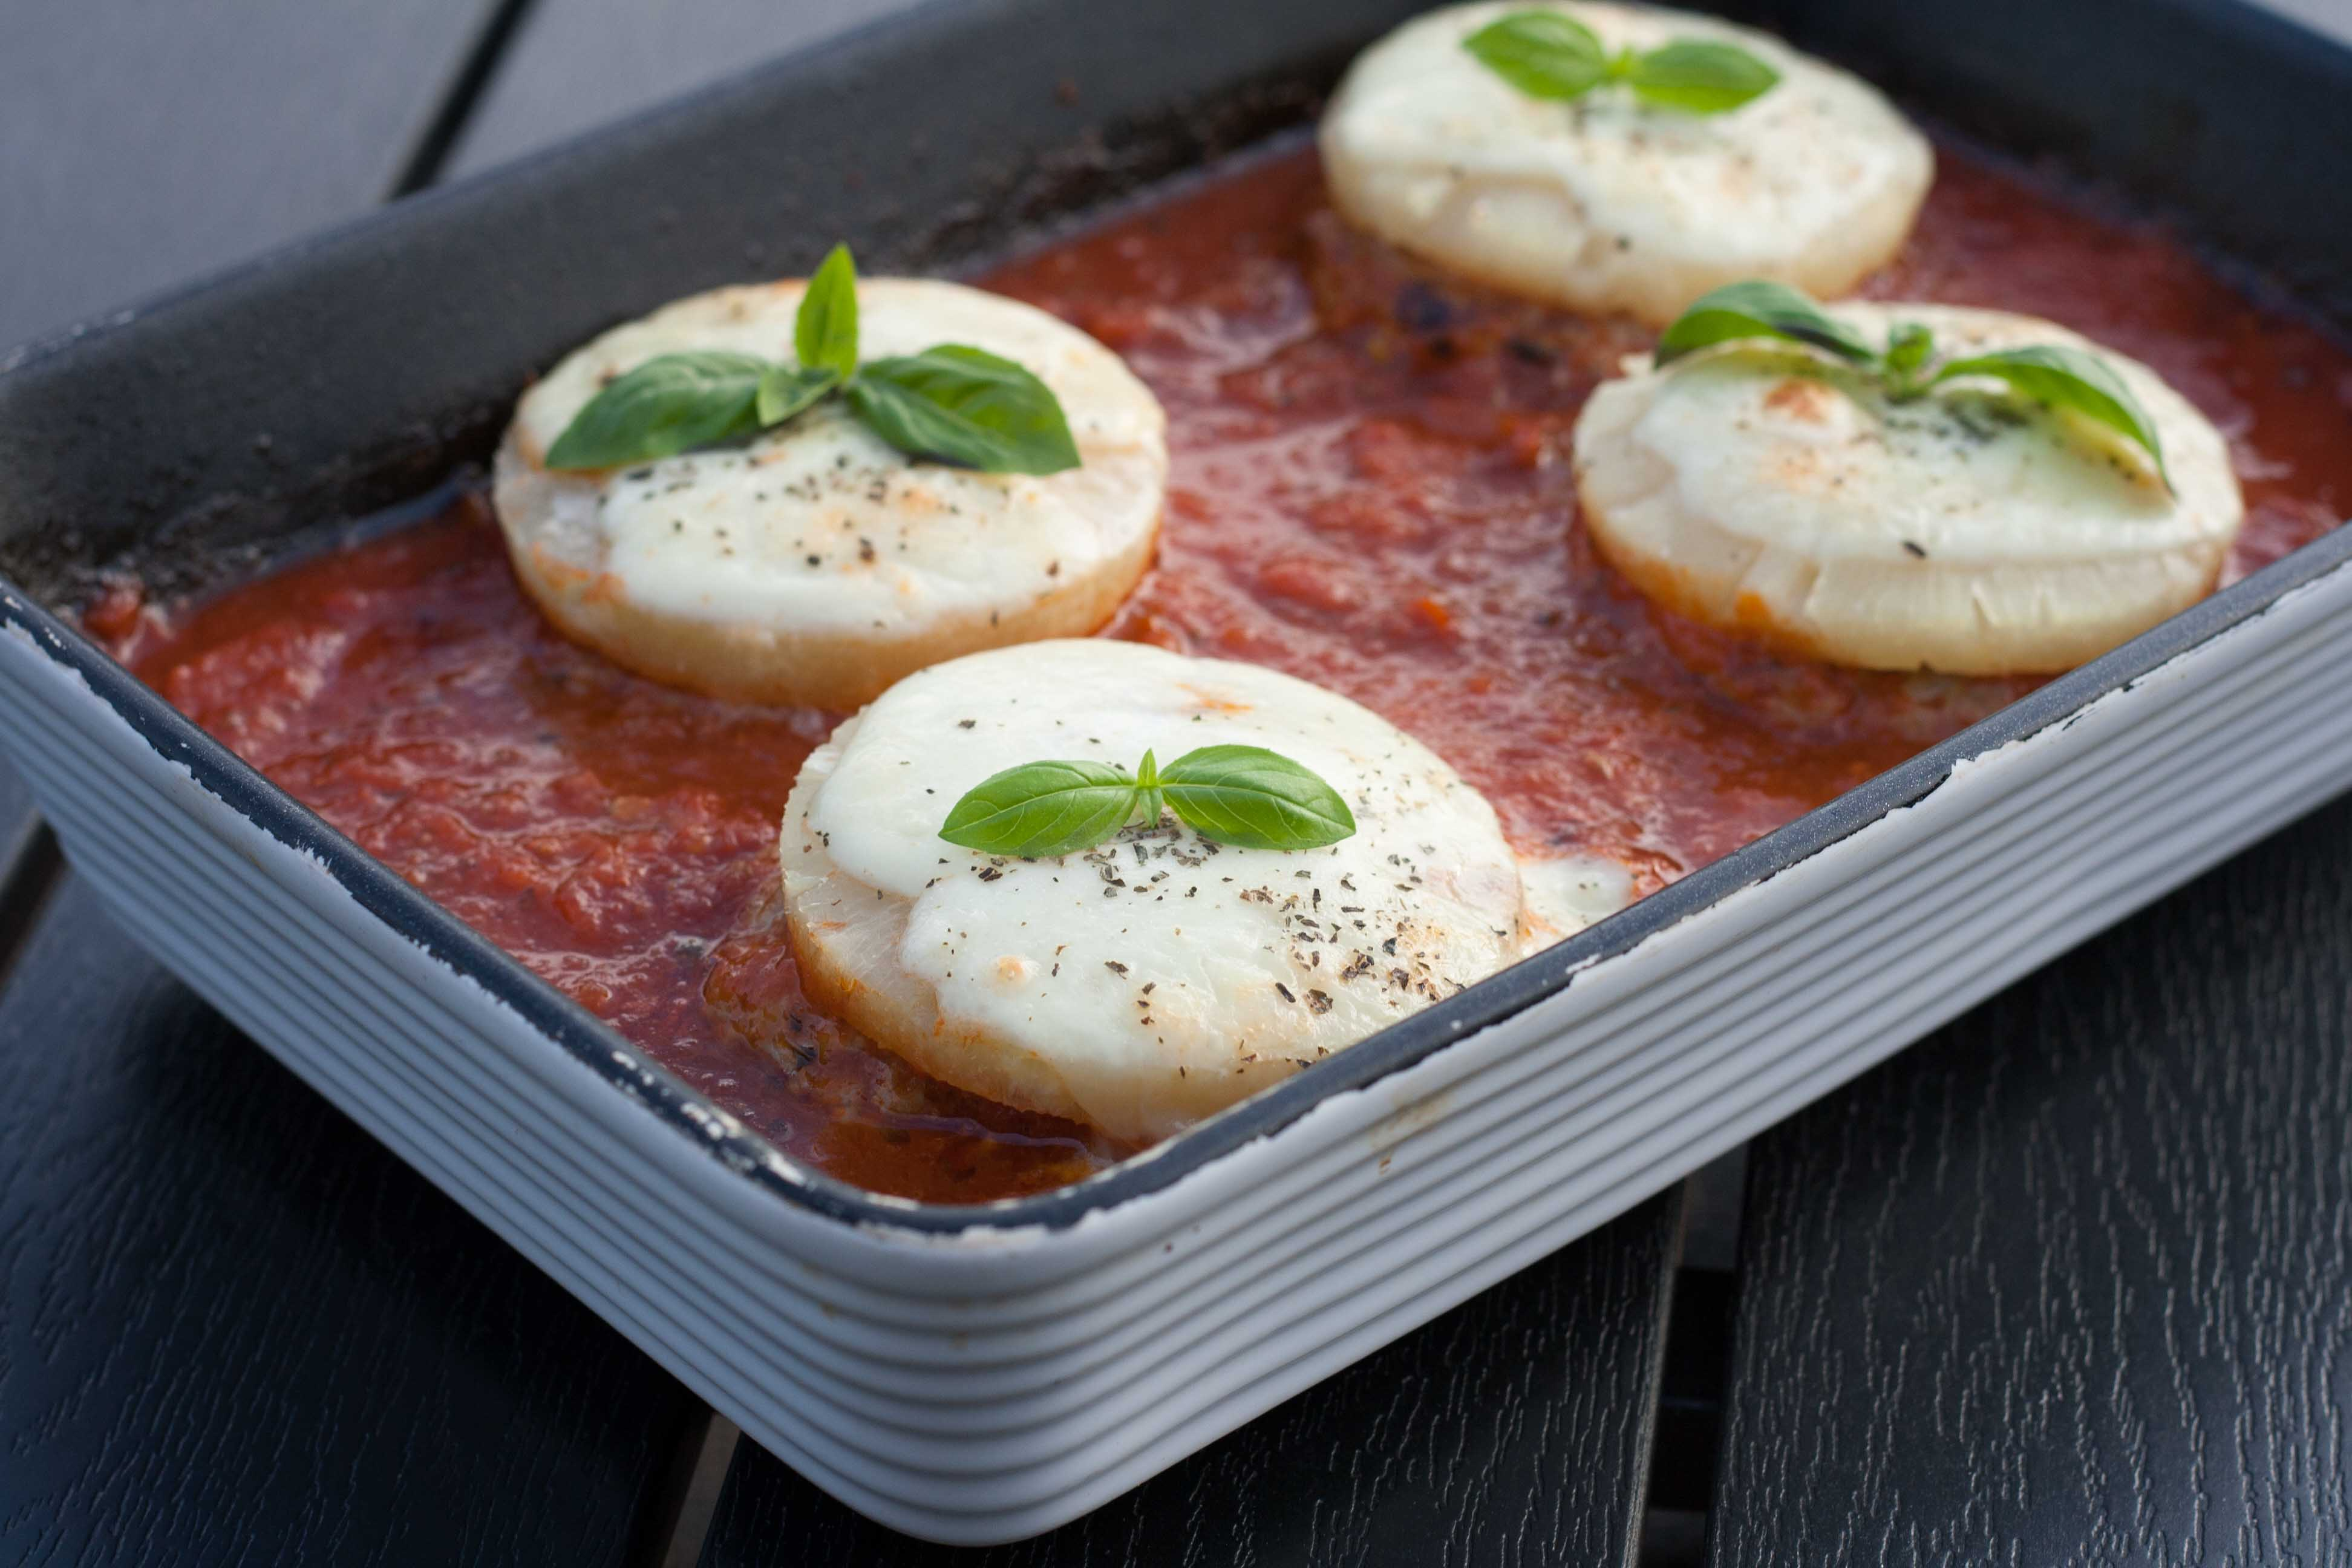 Hawaii Pork Patties in delicious tomato sauce wiht mozzarella and basil